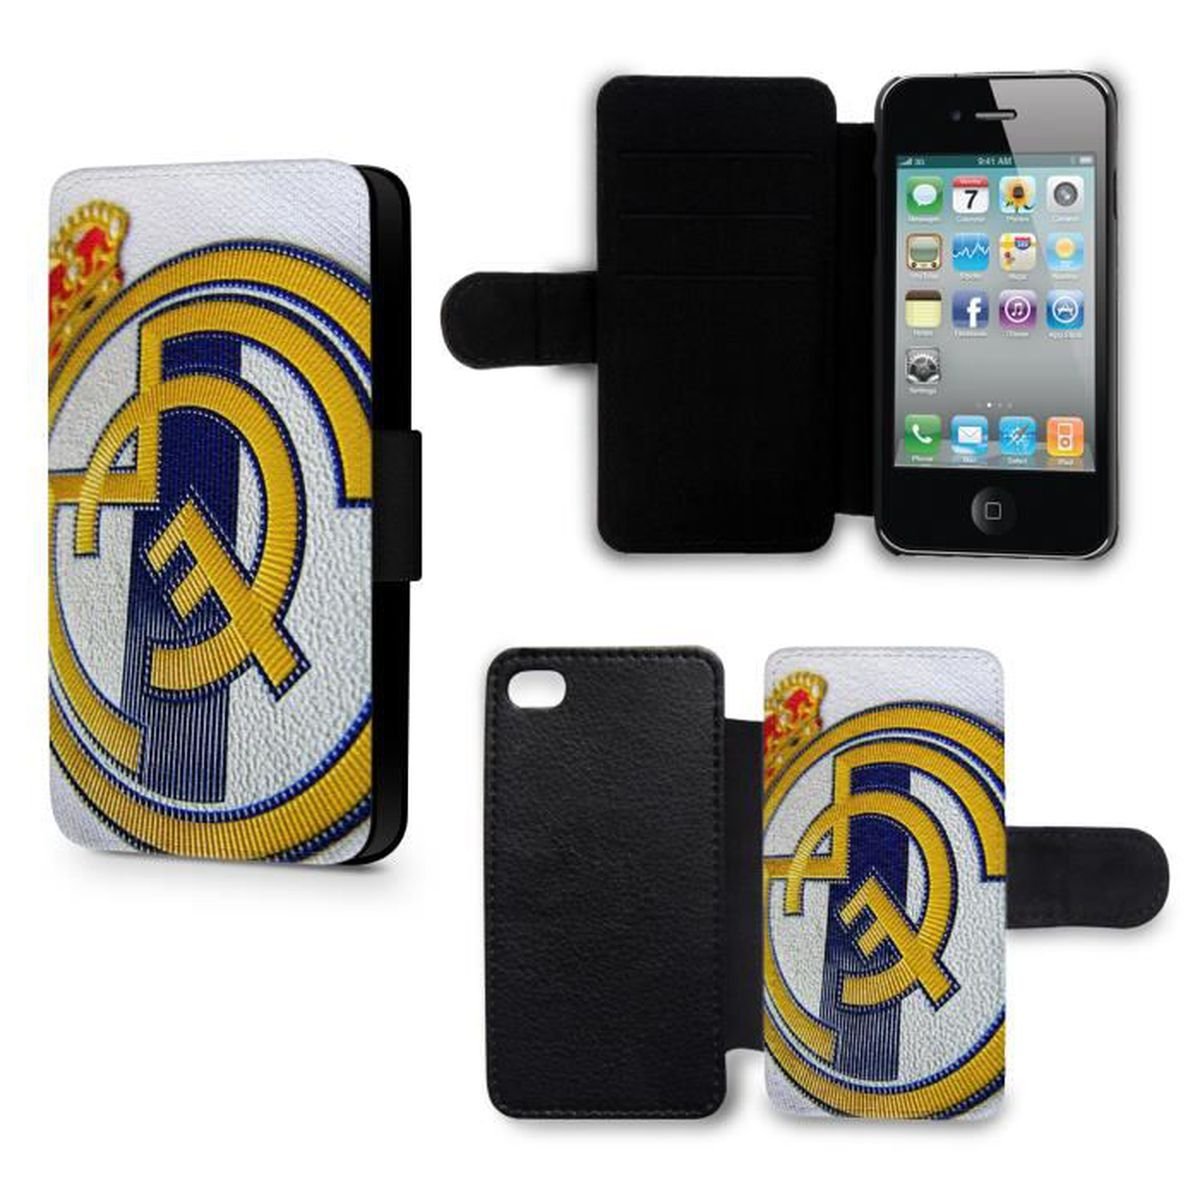 etui housse iphone 5c real madrid football equipe